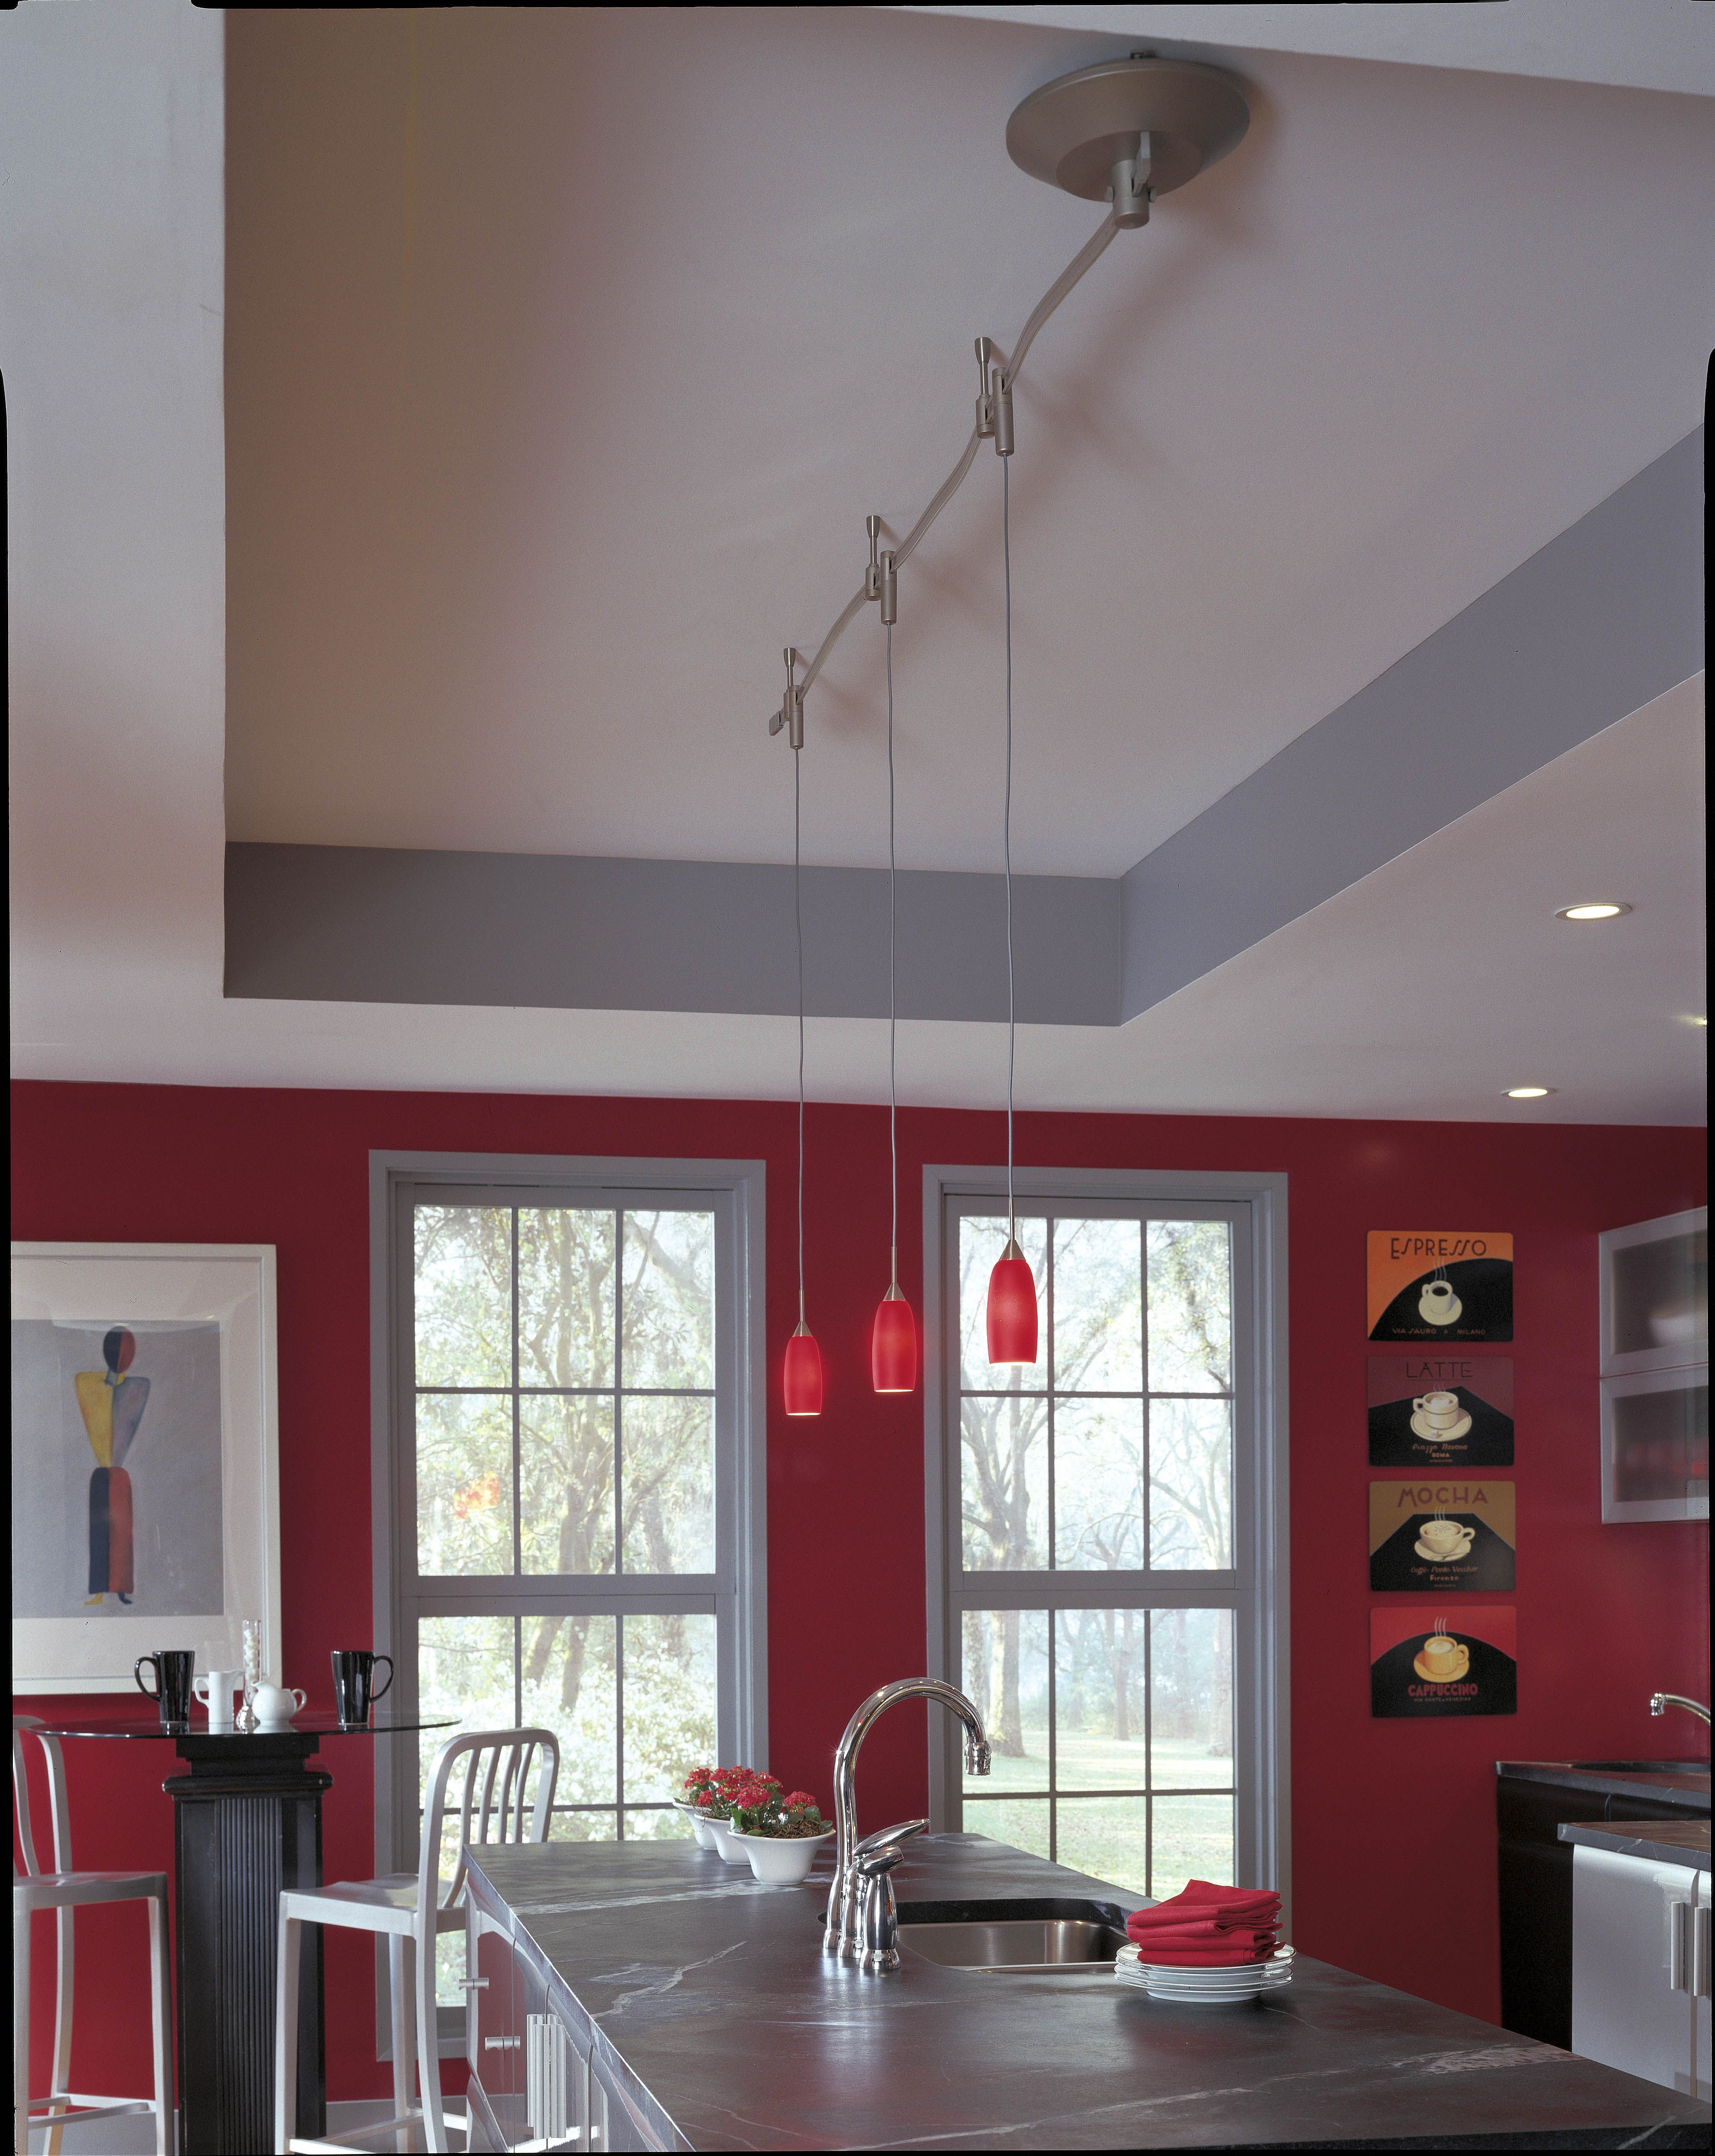 This is what I need for my off center light in the kitchen   different  lights   Track LightingLighting IdeasProgress LightingDiy  This is what I need for my off center light in the kitchen  . Diy Kitchen Track Lighting. Home Design Ideas